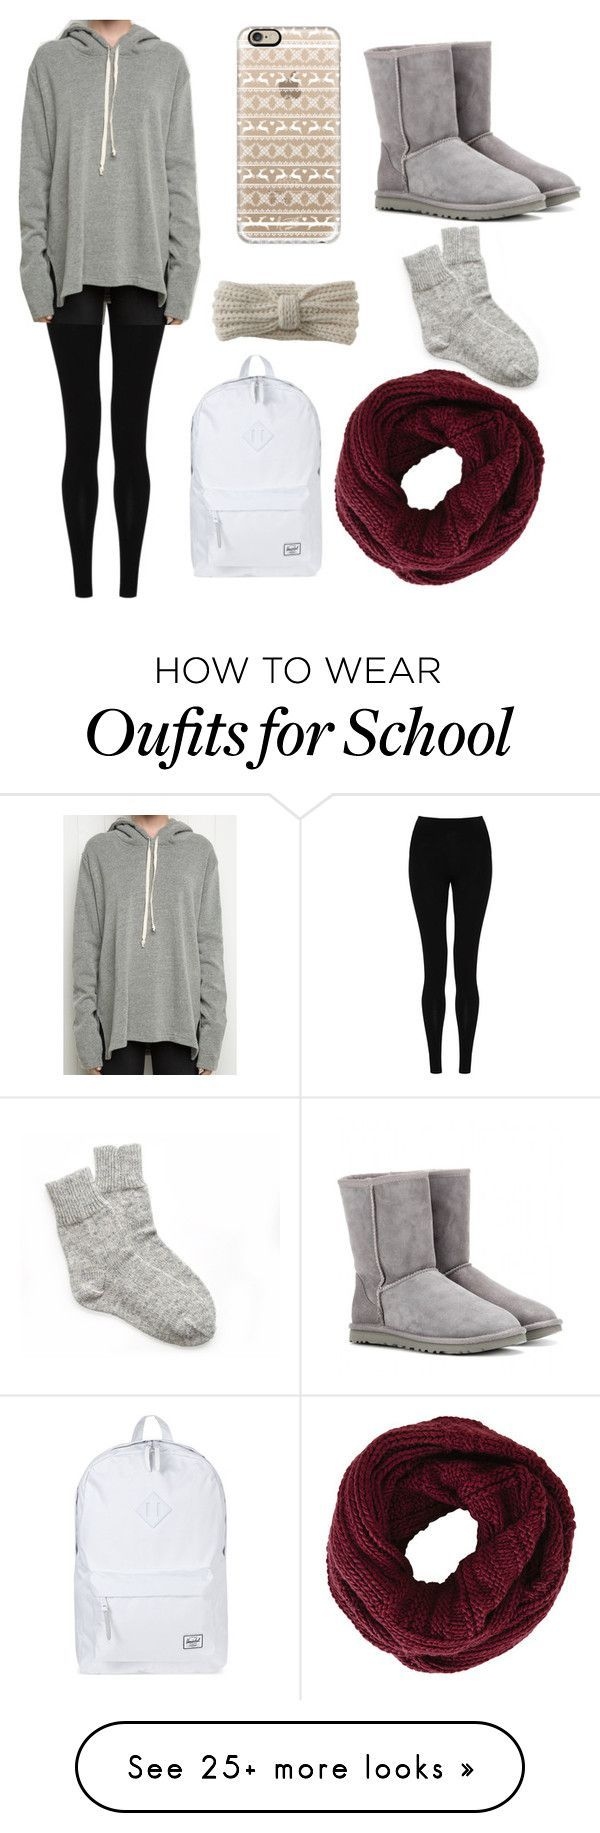 """school winter"" by emorygaddis on Polyvore featuring M&S Collection, Herschel Supply Co., Aéropostale, BCBGMAXAZRIA, Casetify and UGG Australia"